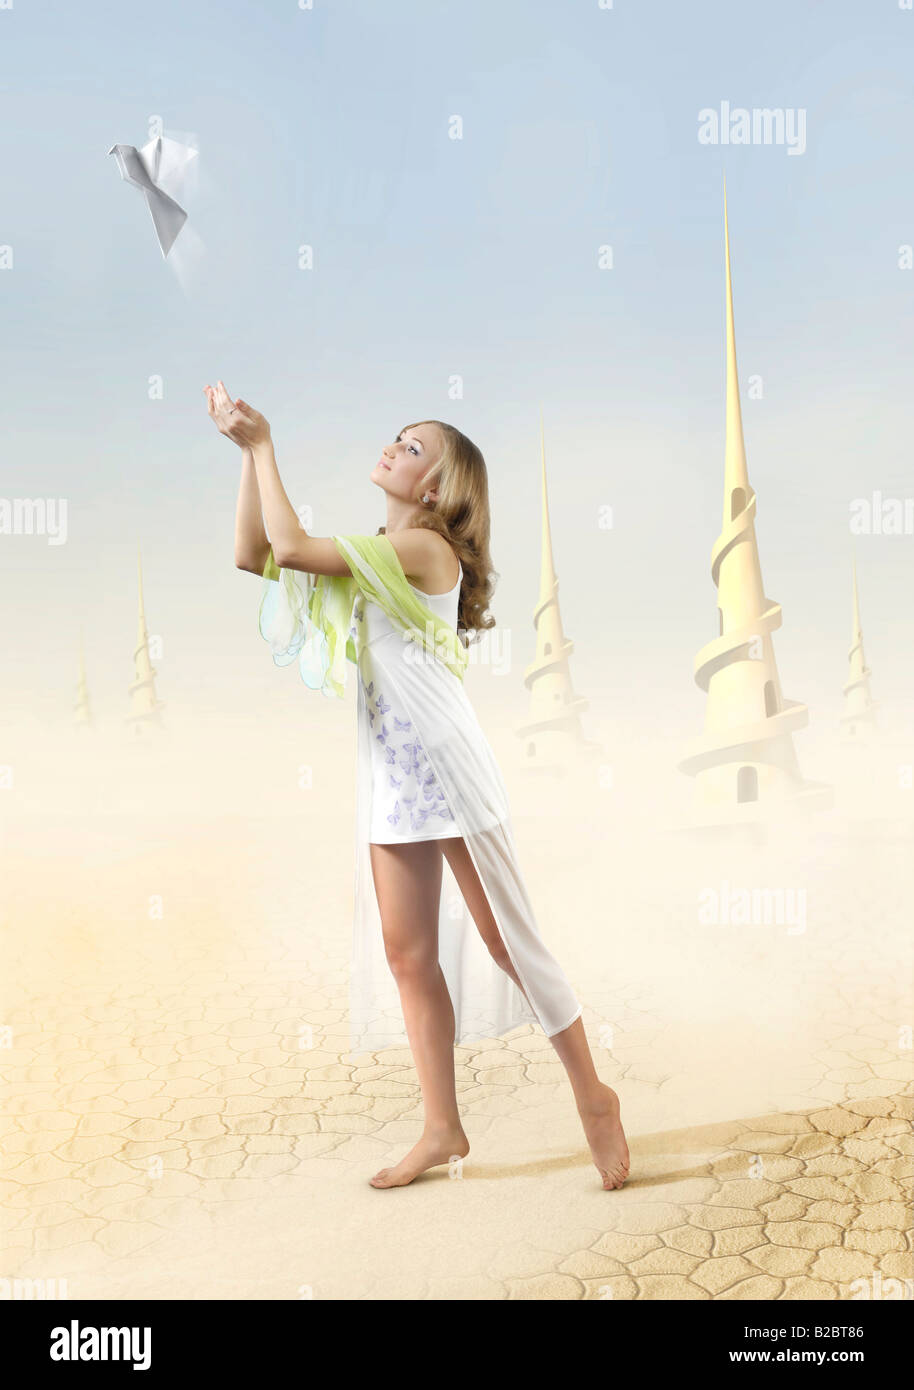 Young beautiful girl, releasing a white peace dove made of paper into the blue sky in an extraterrestrial desert - Stock Image